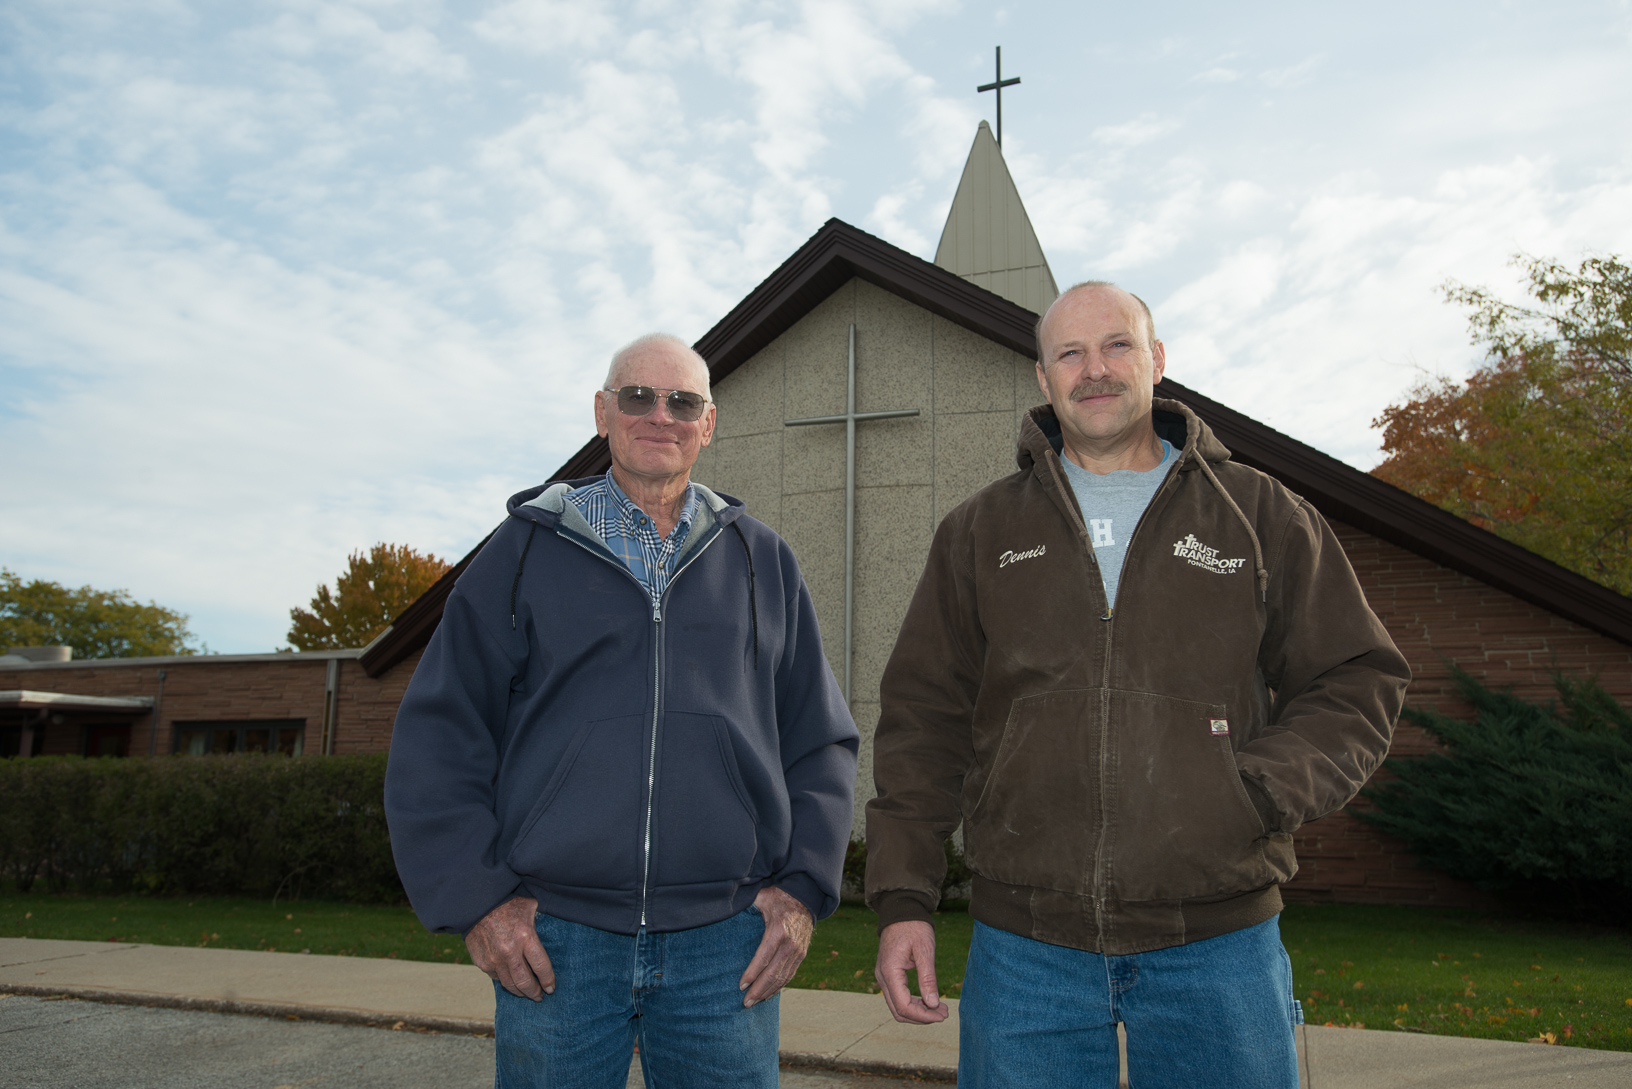 Rolan Jensen (left) and Dennis Lundy stand outside Greenfield United Methodist Church in 2015. They are instrumental in bringing the Fields of Faith project to life each year. Photo credit: Joseph L. Murphy/Iowa Soybean Association.